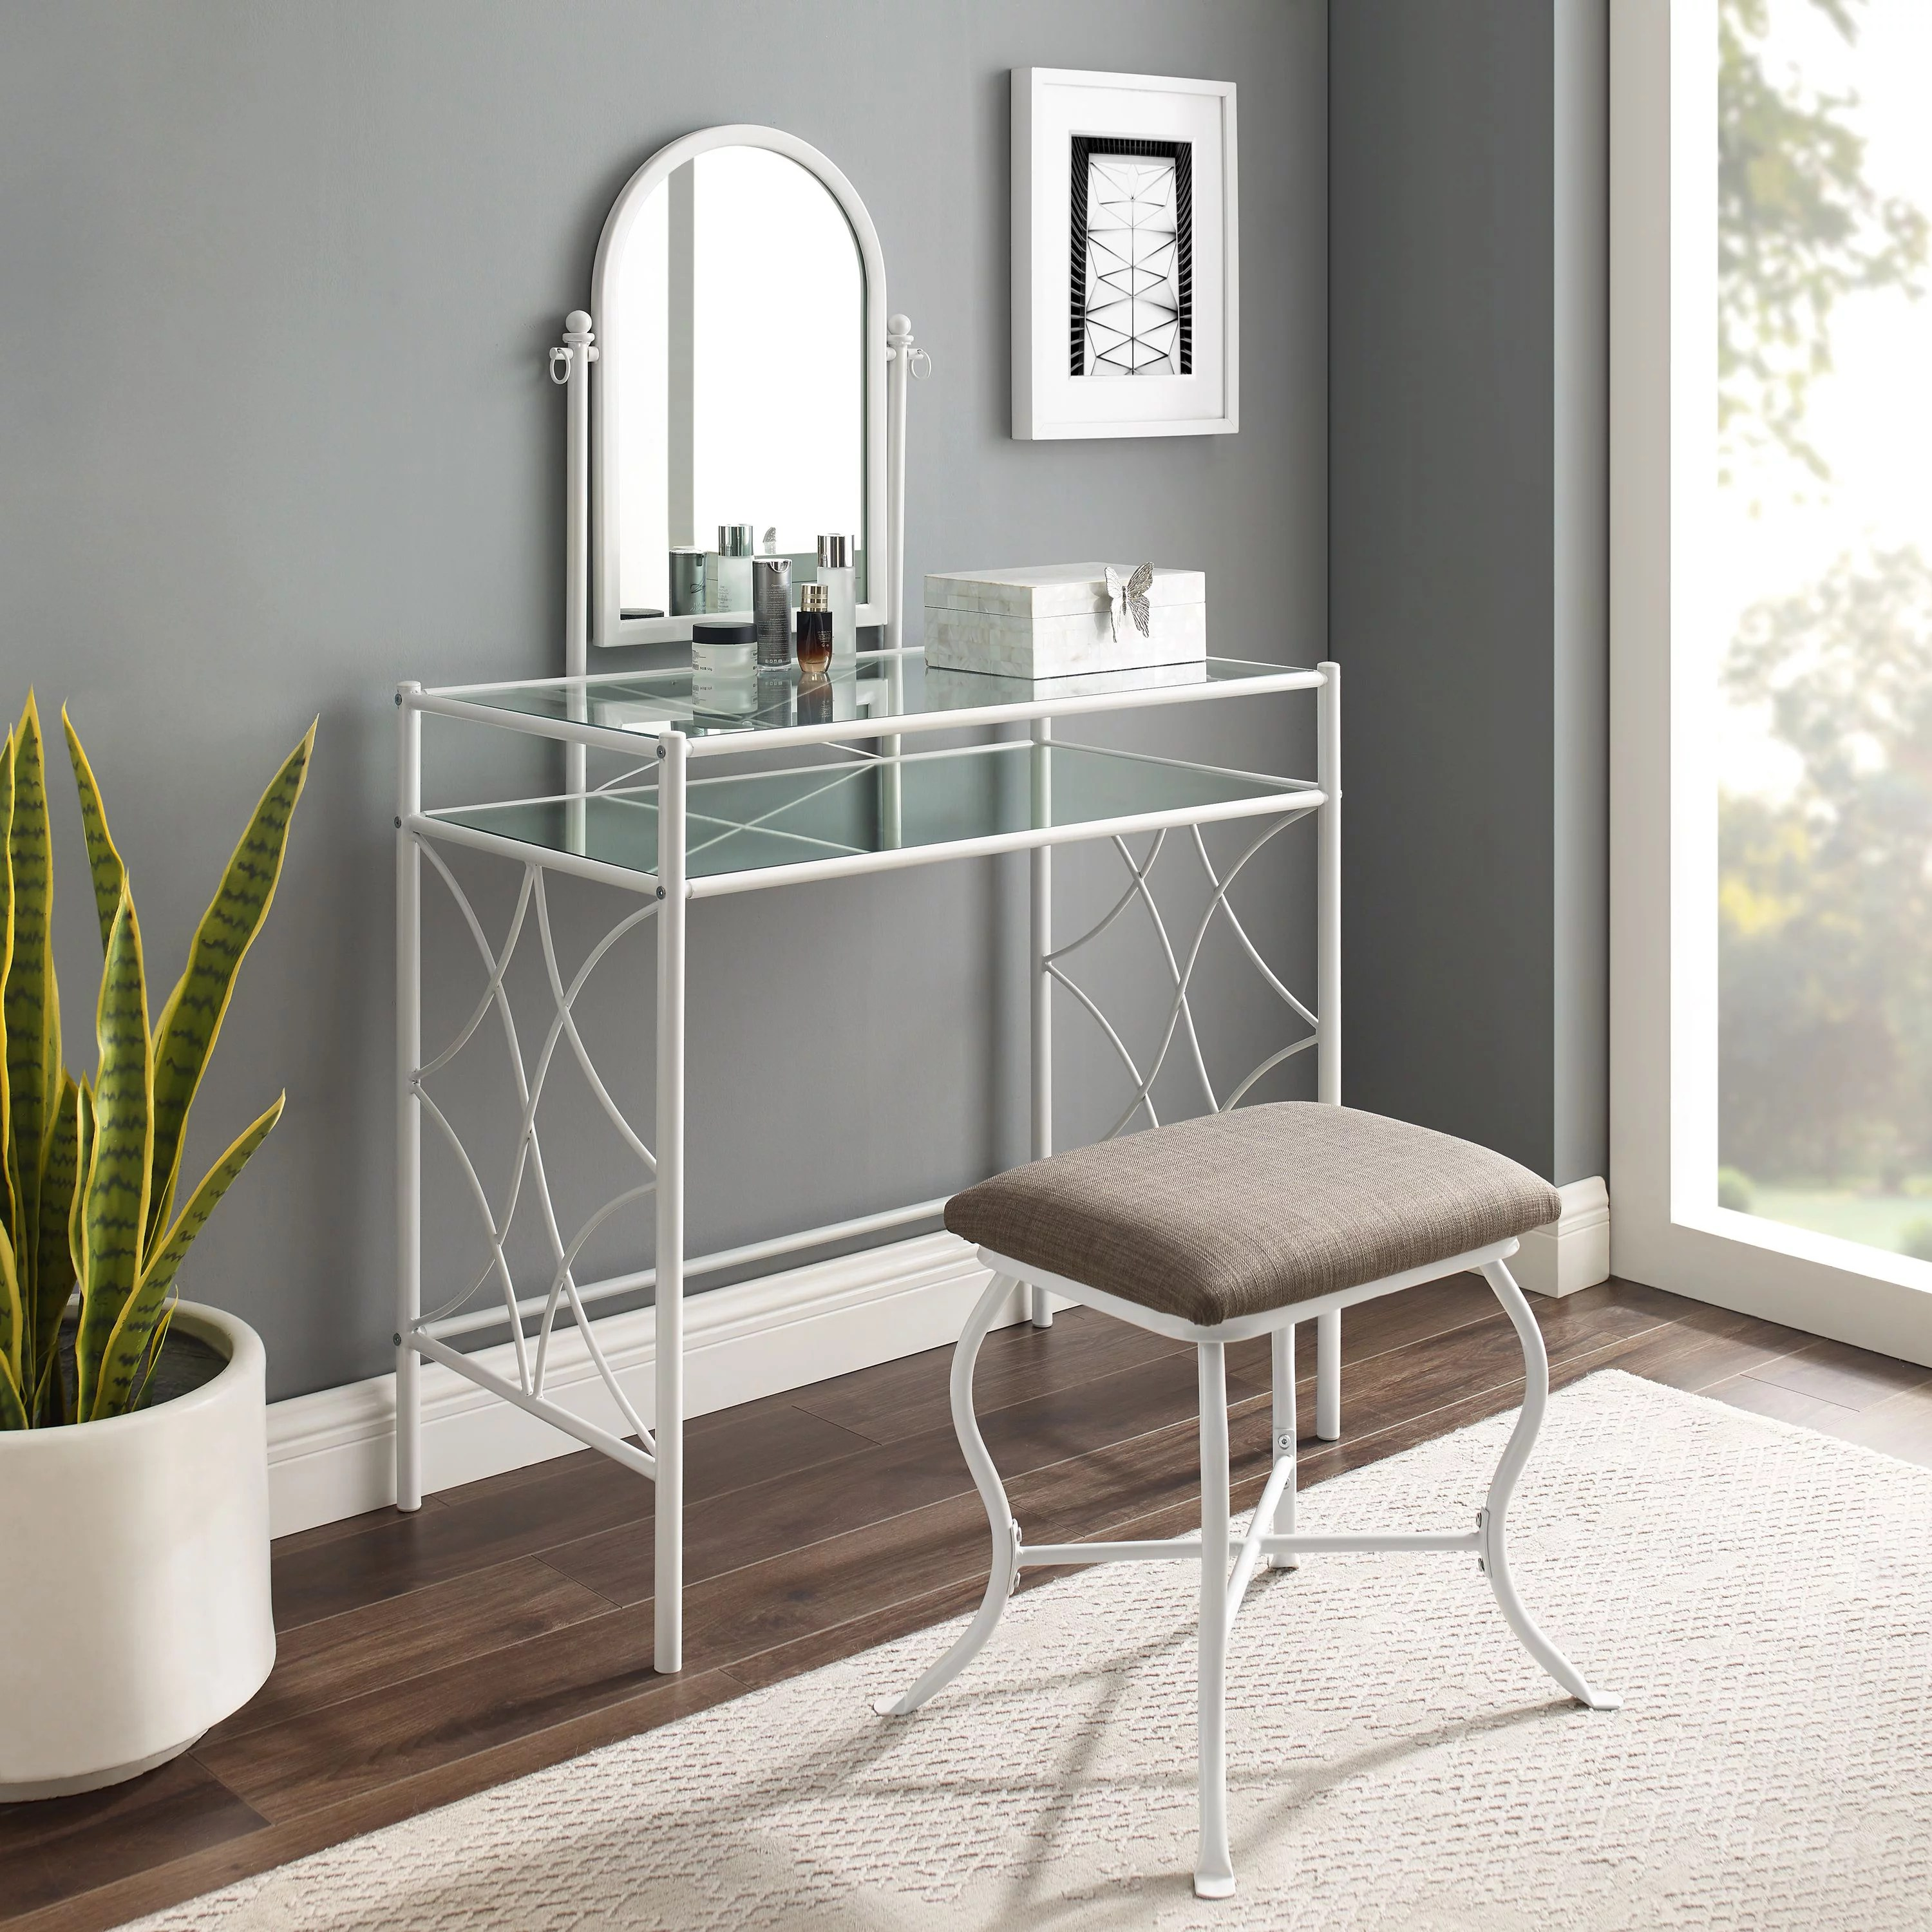 mainstays lattice metal and glass vanity set with shelf and upholstered stool white